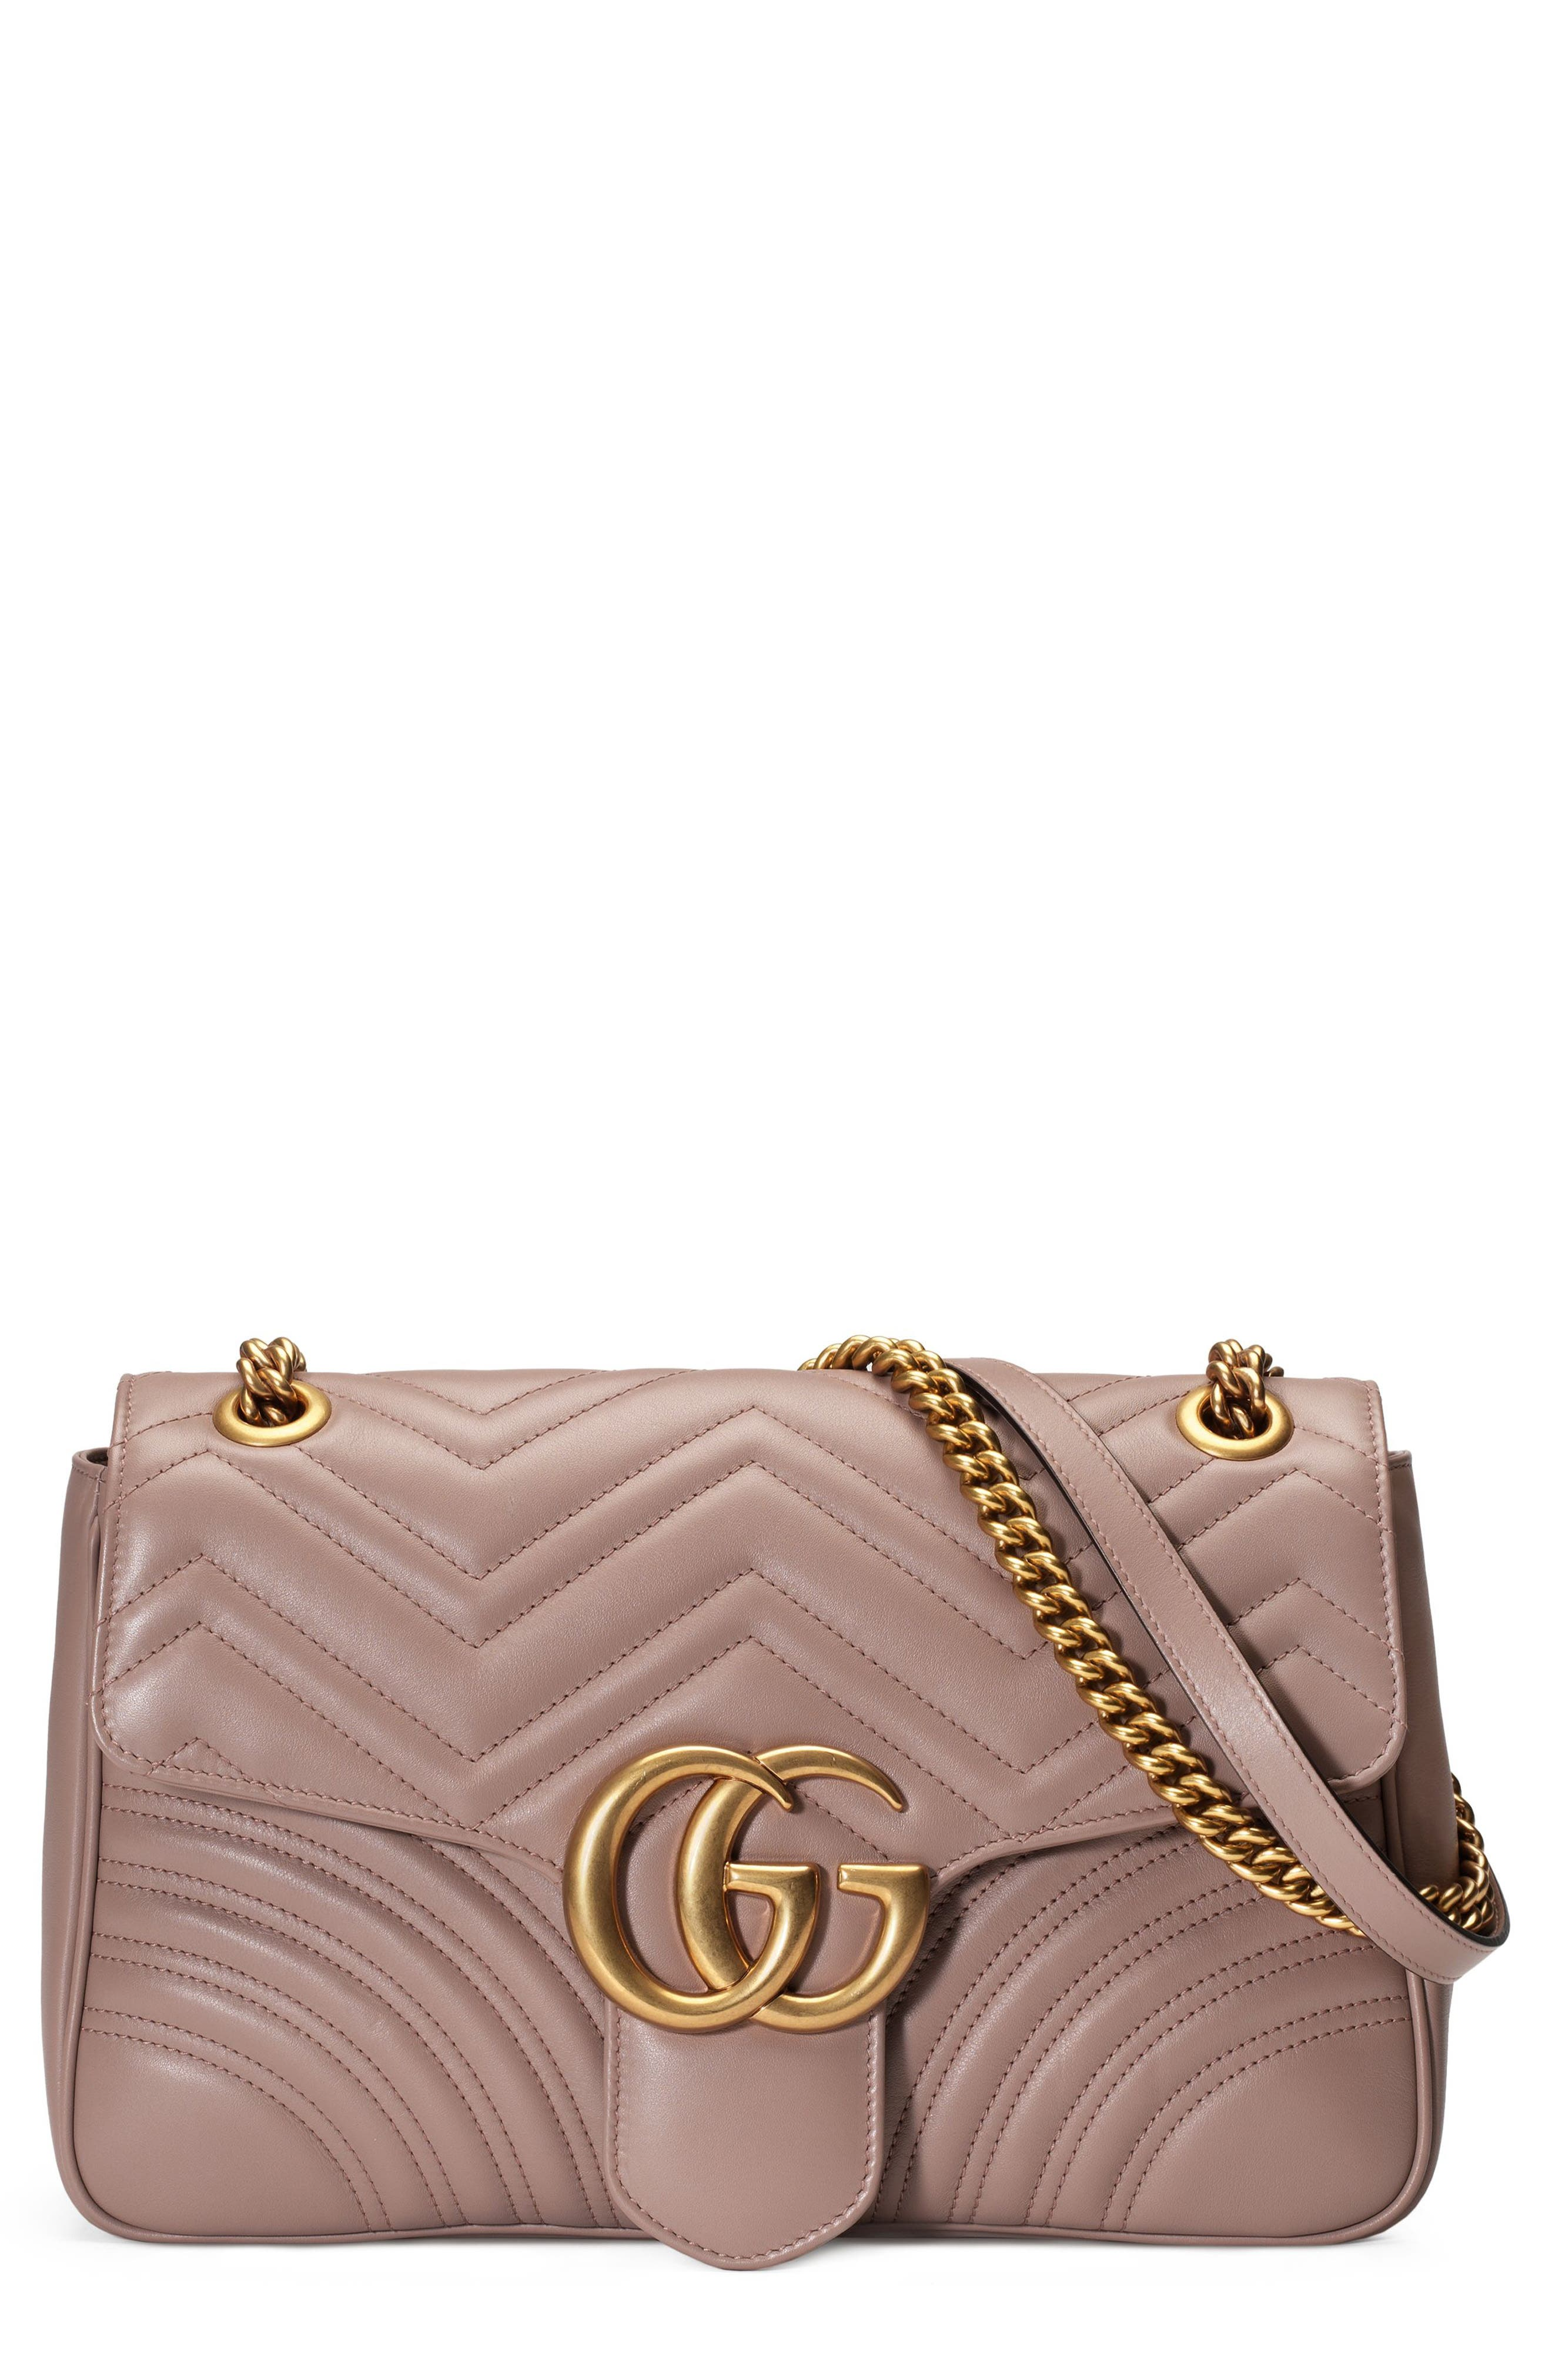 GUCCI, Medium GG Marmont 2.0 Matelassé Leather Shoulder Bag, Main thumbnail 1, color, PORCELAIN ROSE/ PORCELAIN ROSE